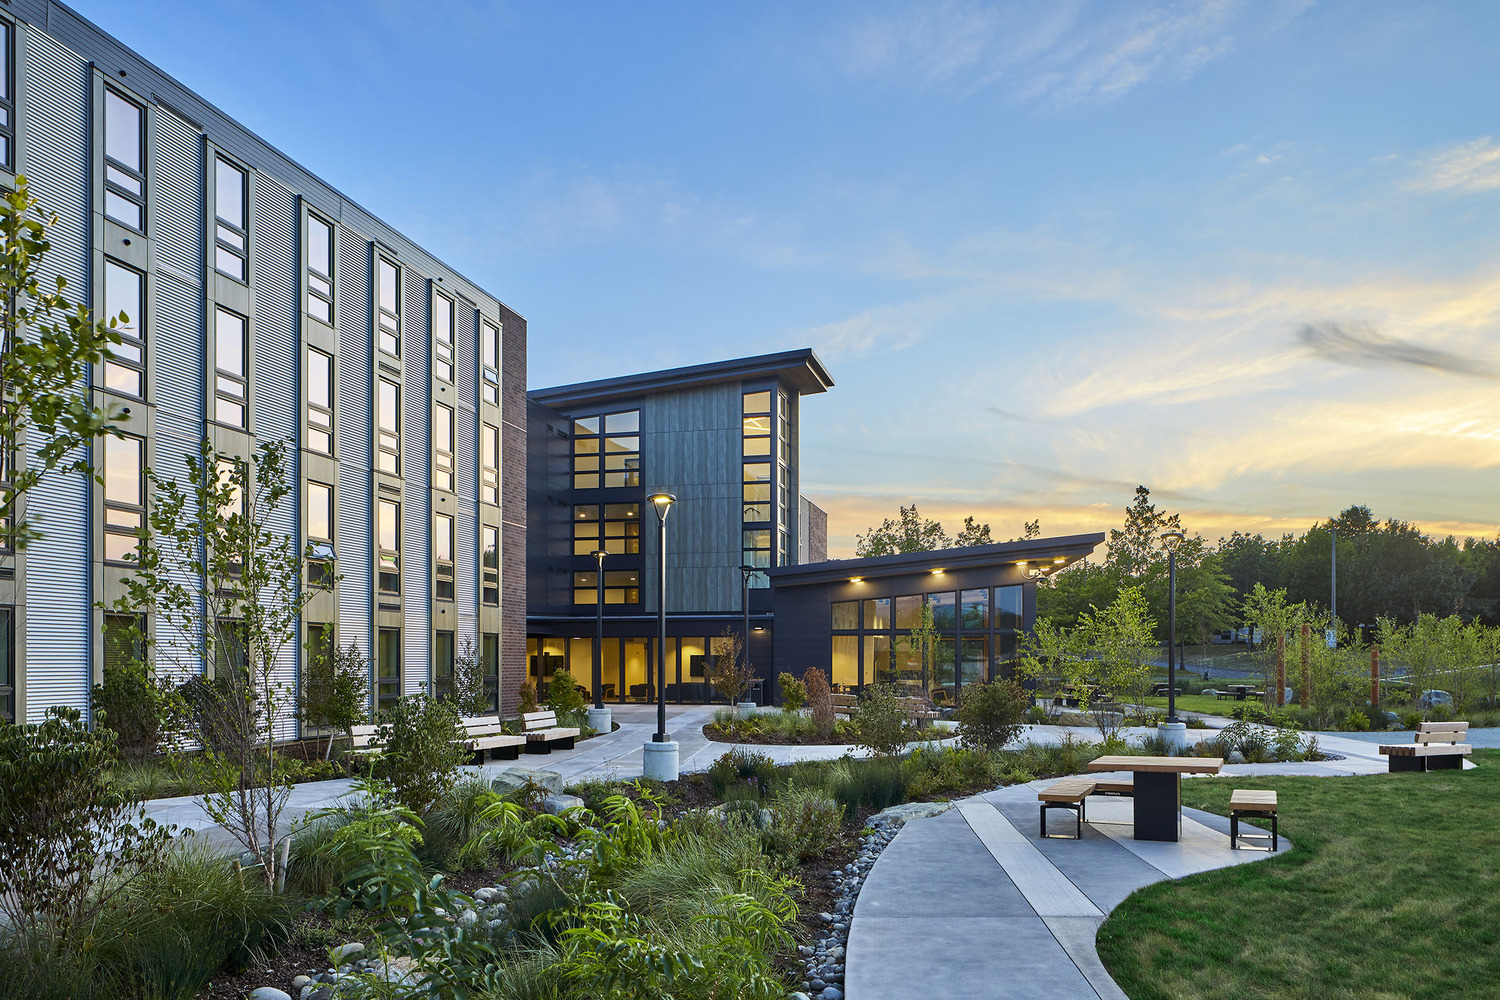 Photo of Whatcom Community College Student Housing